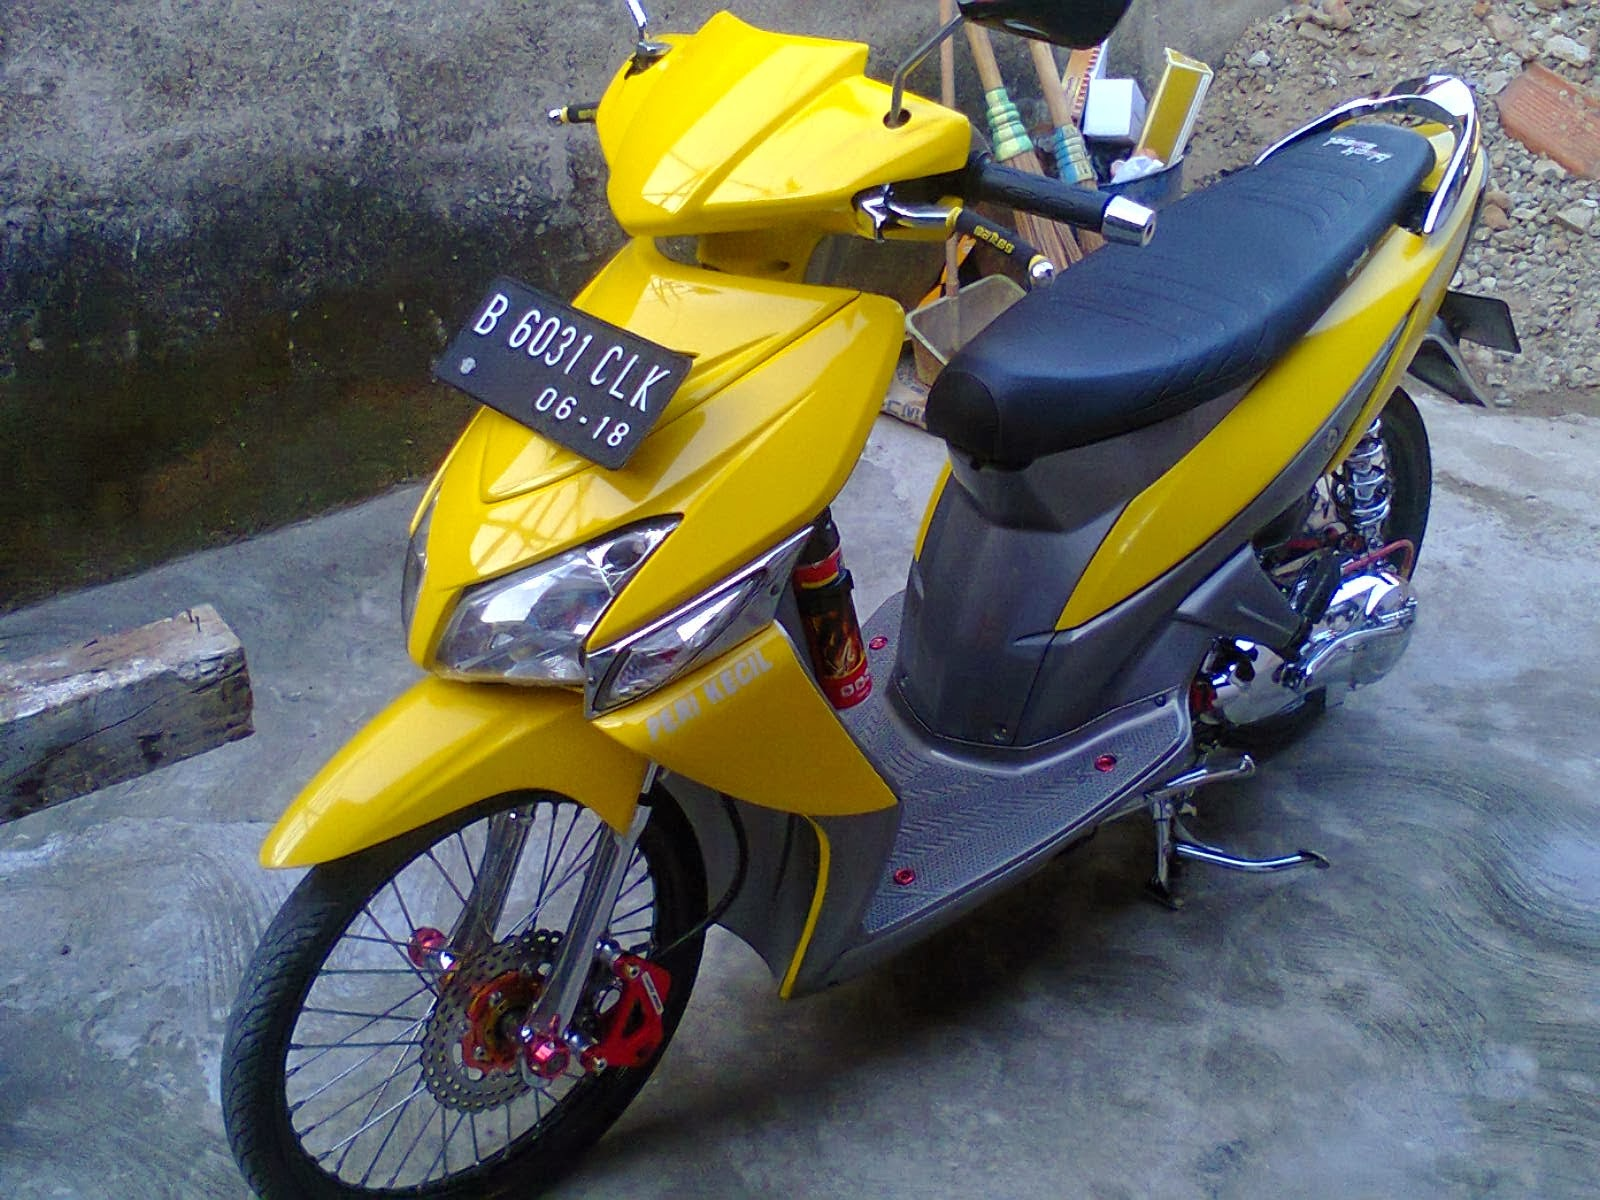 Gambar Modifikasi Motor Vario Velg 17 Terunik Earth Modification